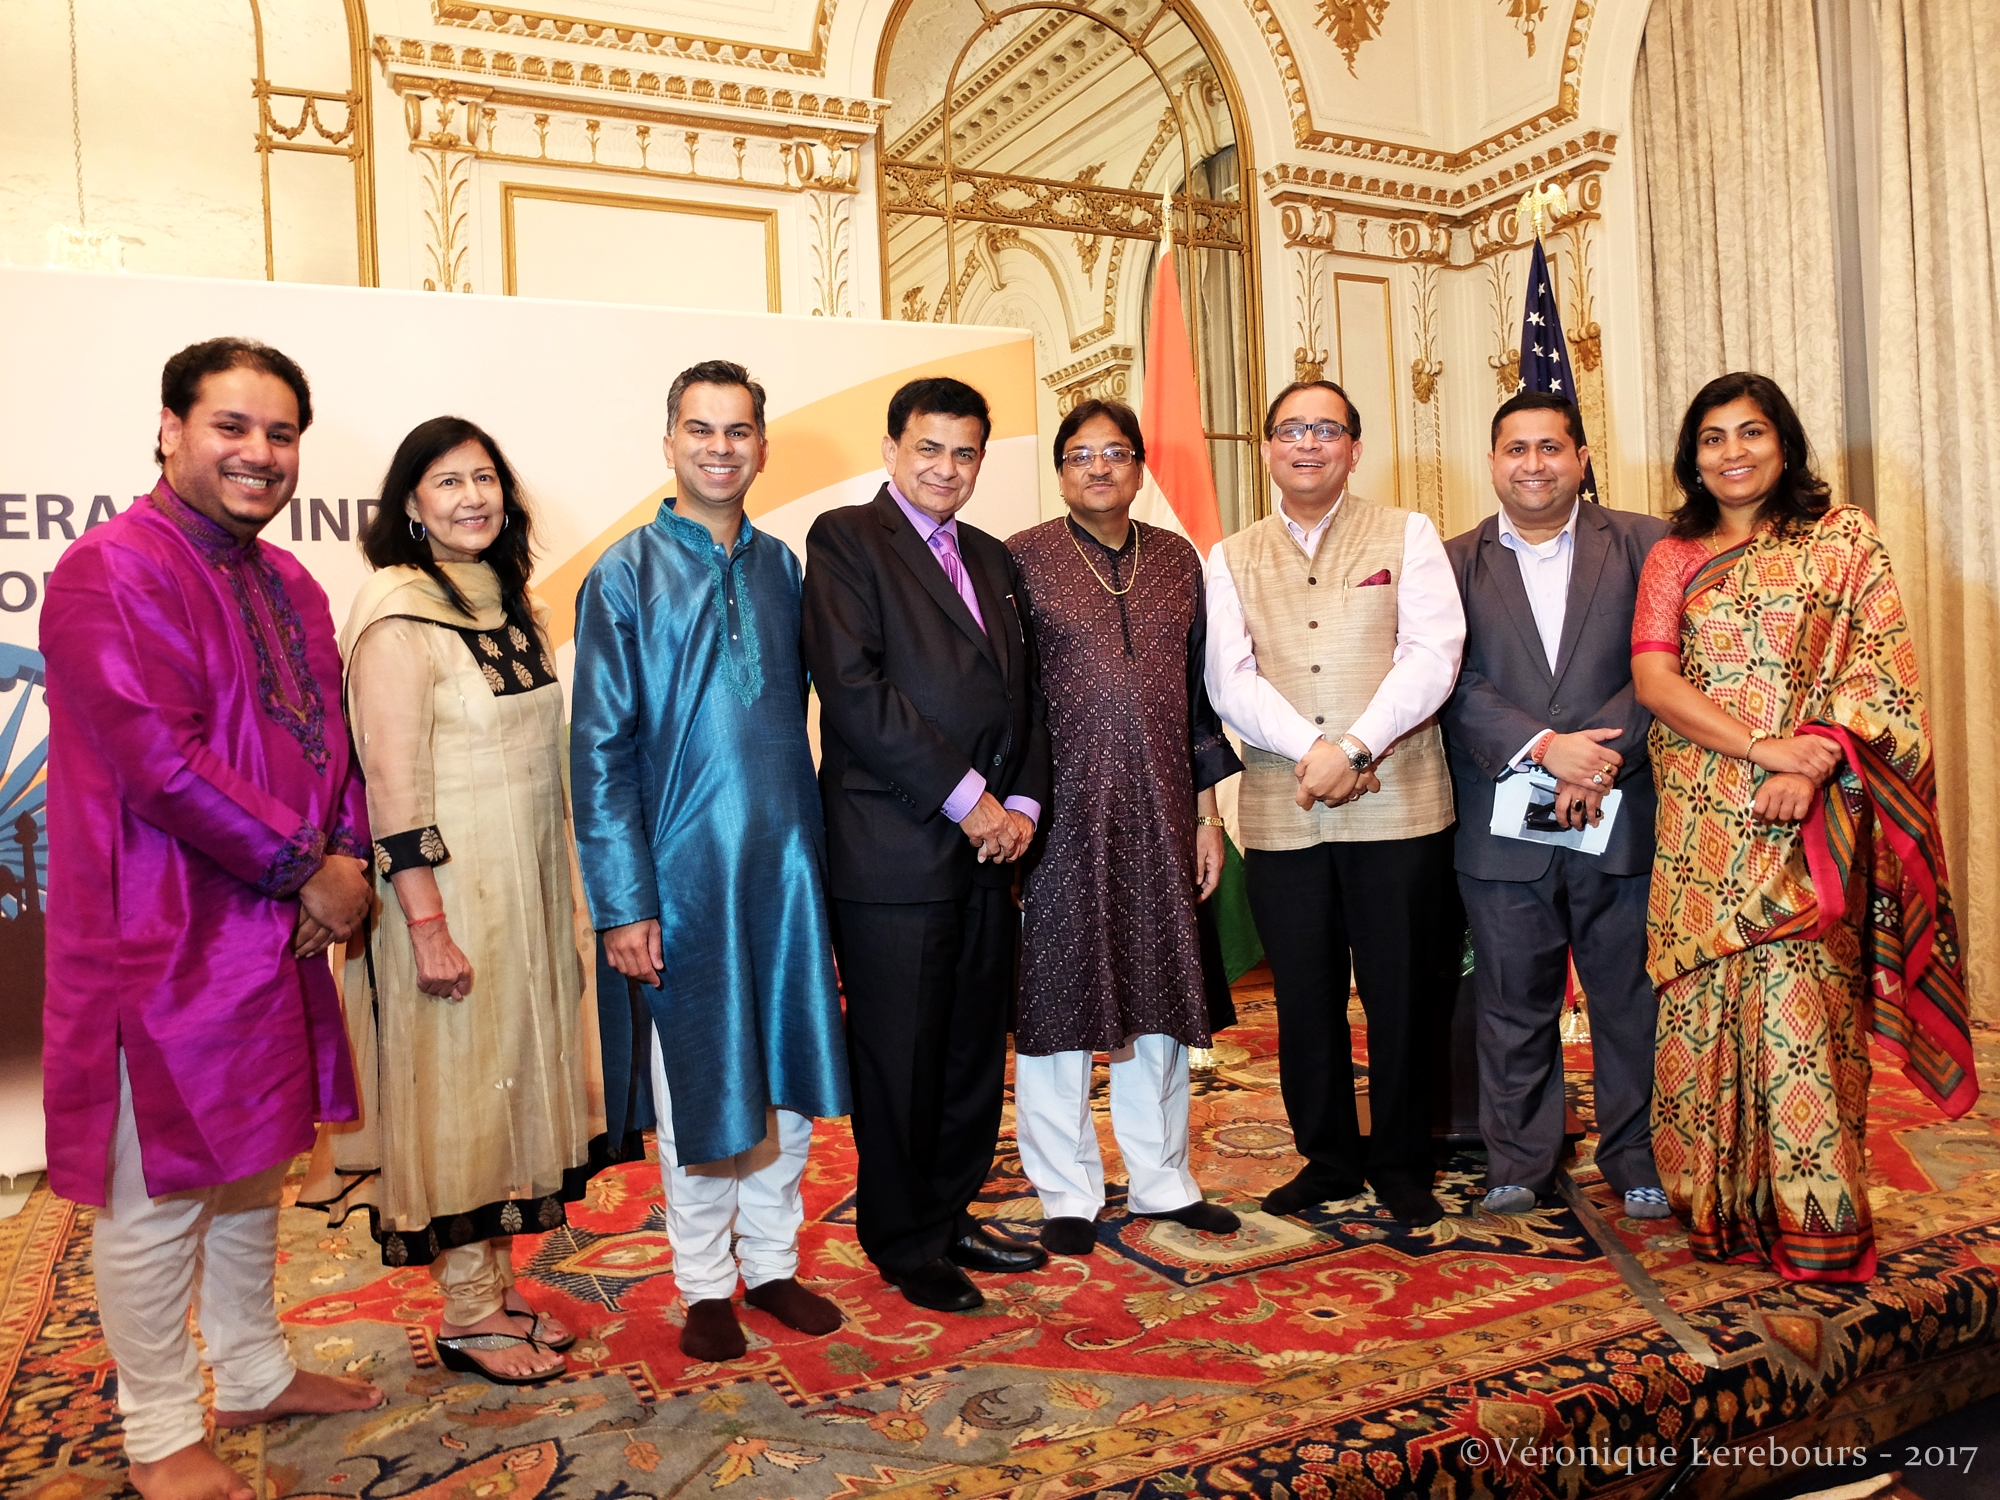 News India Times: Ustad Mashkoor Ali Khan performs at Indian Consulate